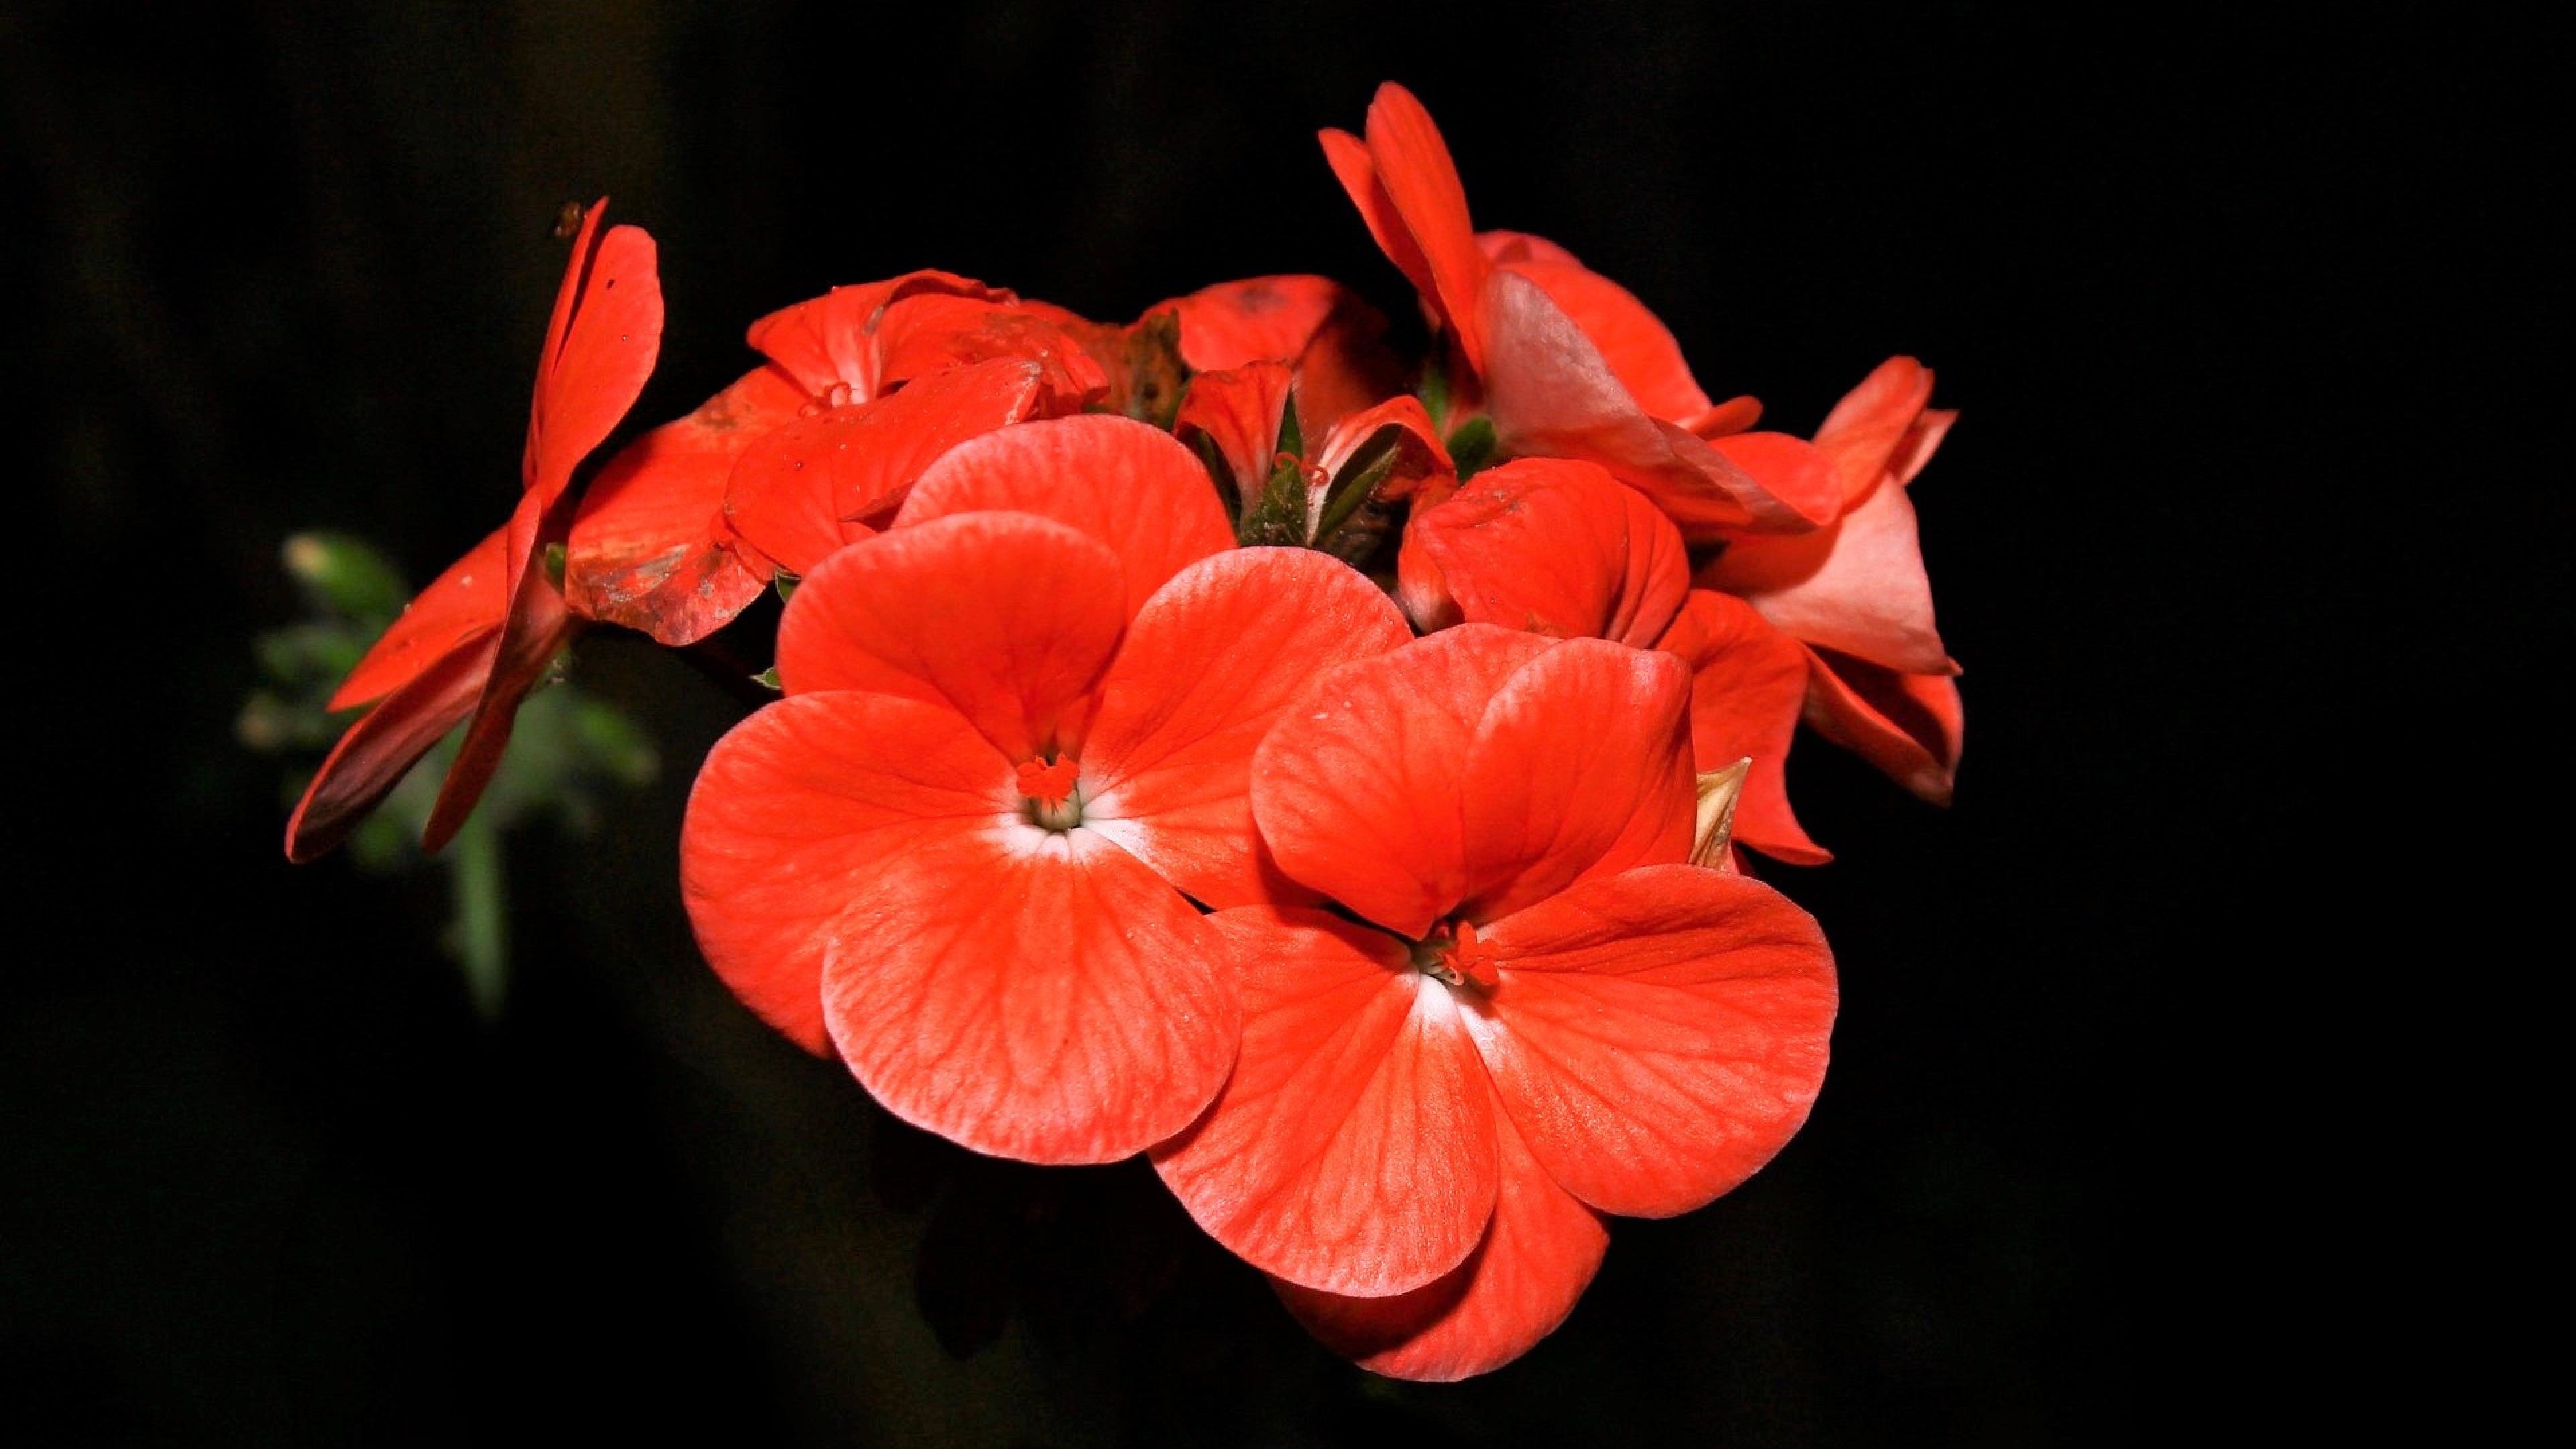 Red beautiful flowers on a black background